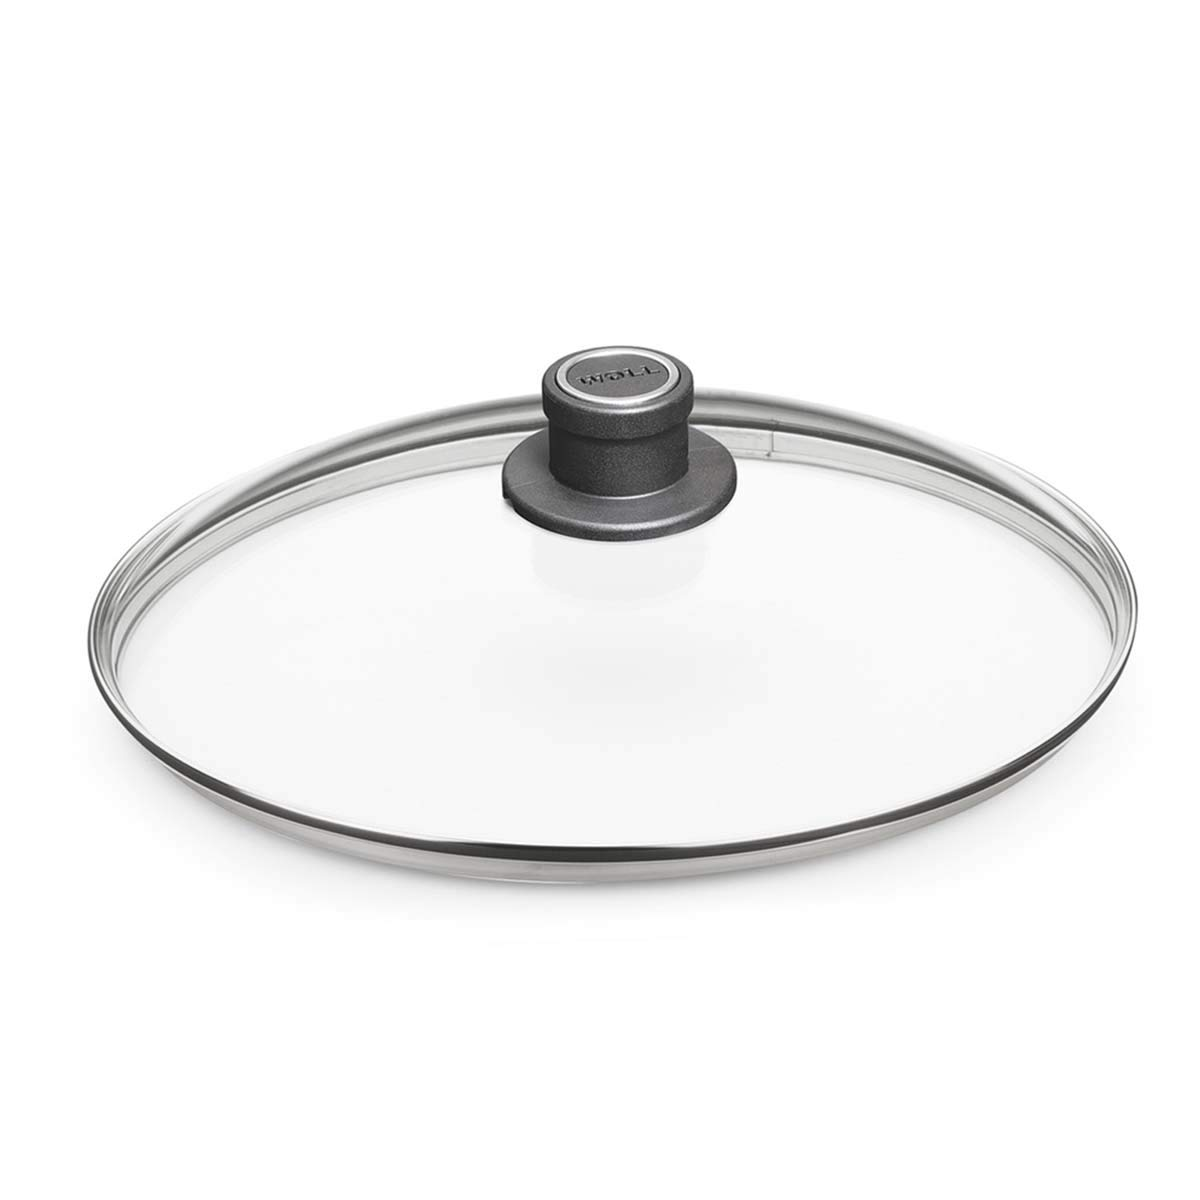 "Woll Tempered Glass with Stainless Steel Rim & Vented Knob Round Lid, 11 3/4"", Clear"